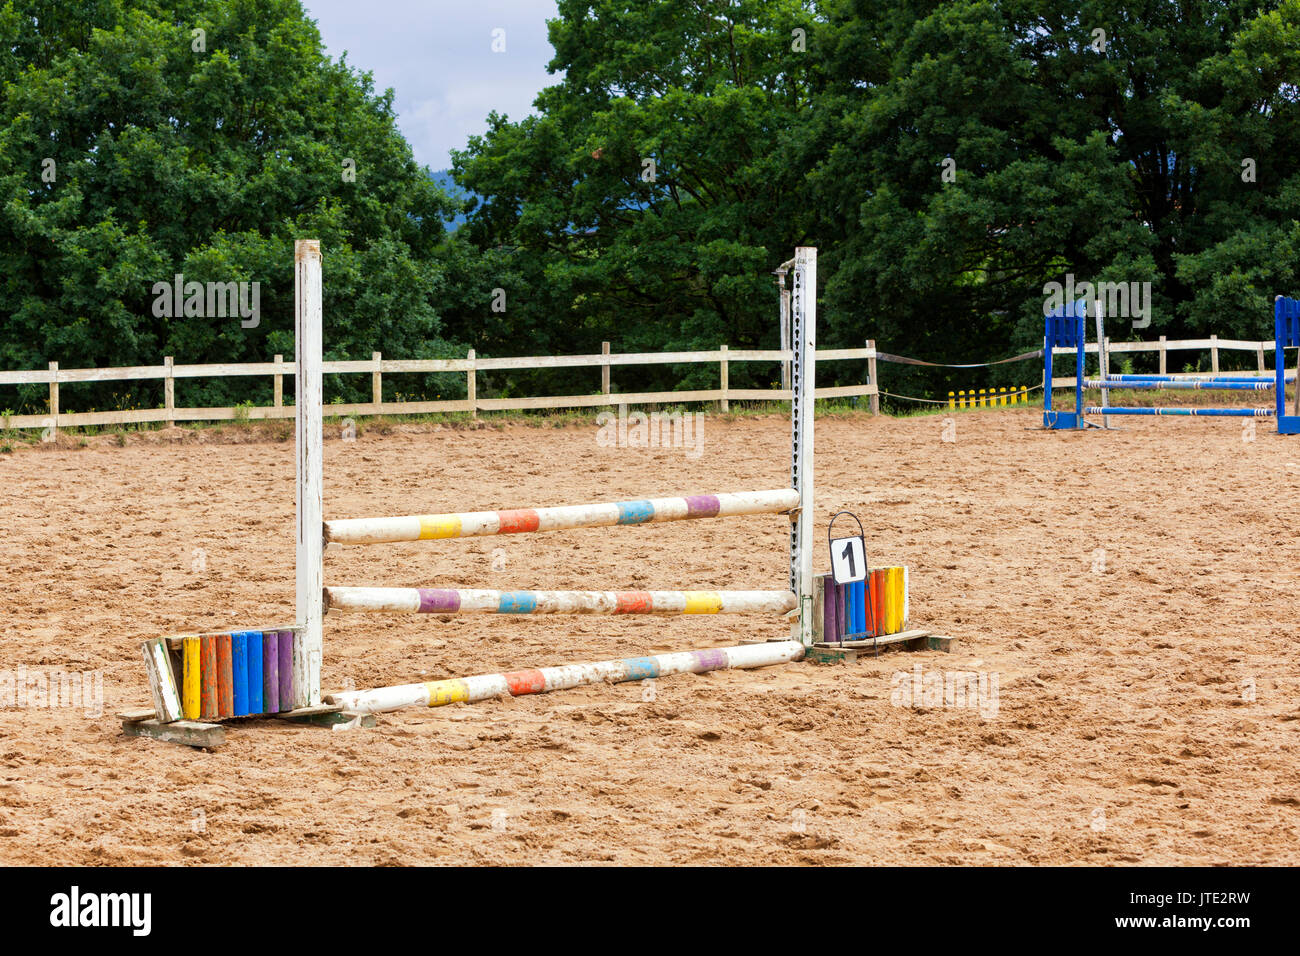 Barrier for horse at the race track - Stock Image